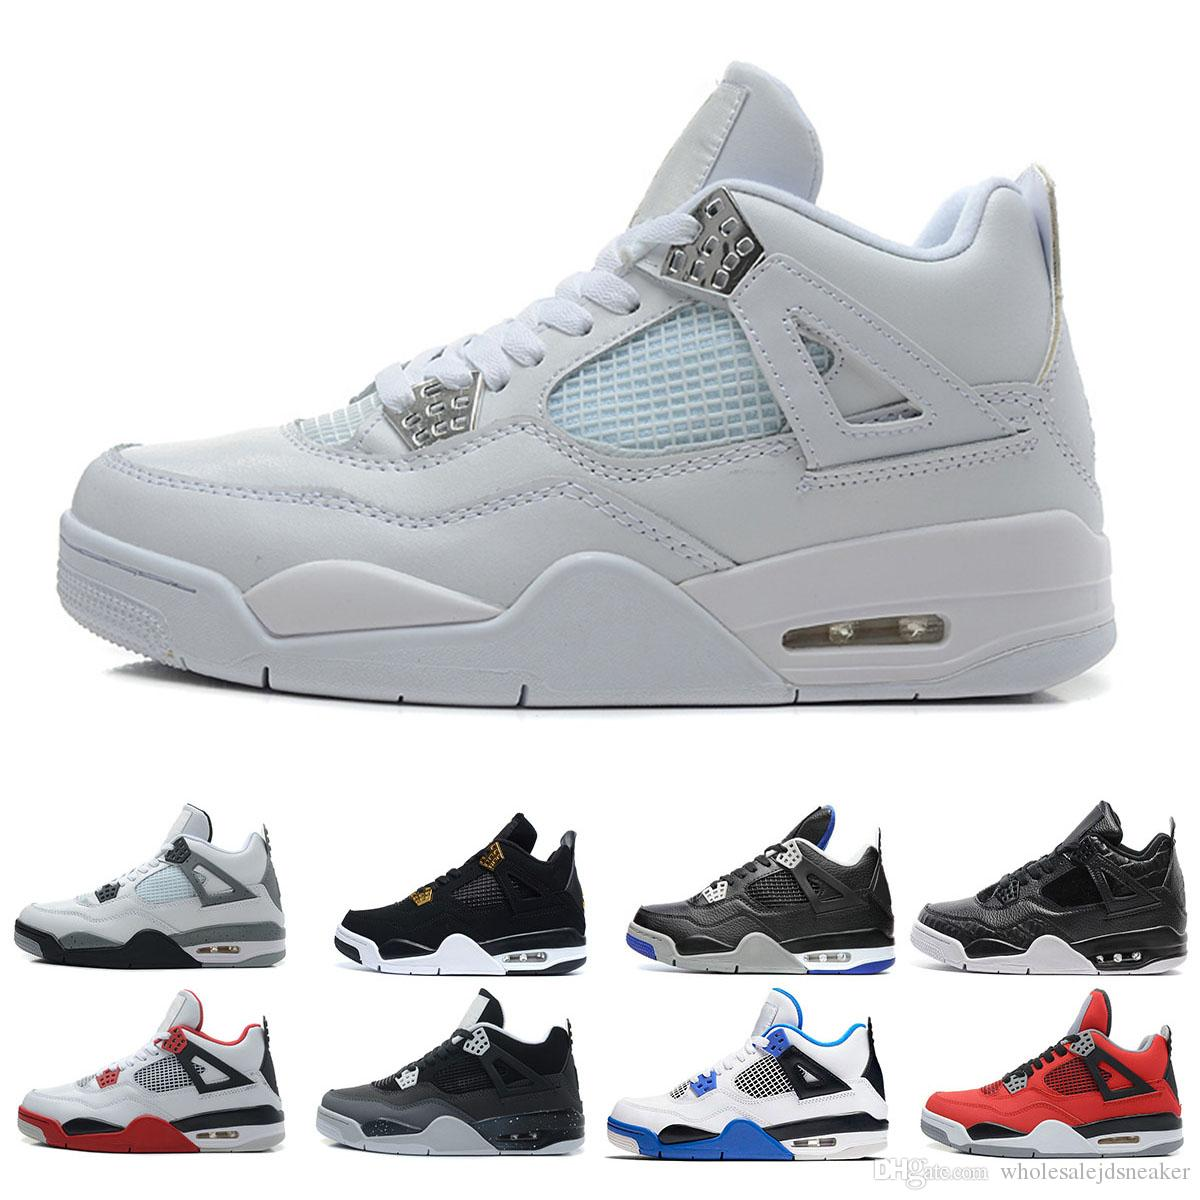 a55505c2e11 2019 4 4s Basketball Shoes Men Pure Money Tattoo White Cement Raptors Black  Cat Bred Fire Red Mens Trainers Sports Sneakers Size 7 13 Discount Shoes  Online ...